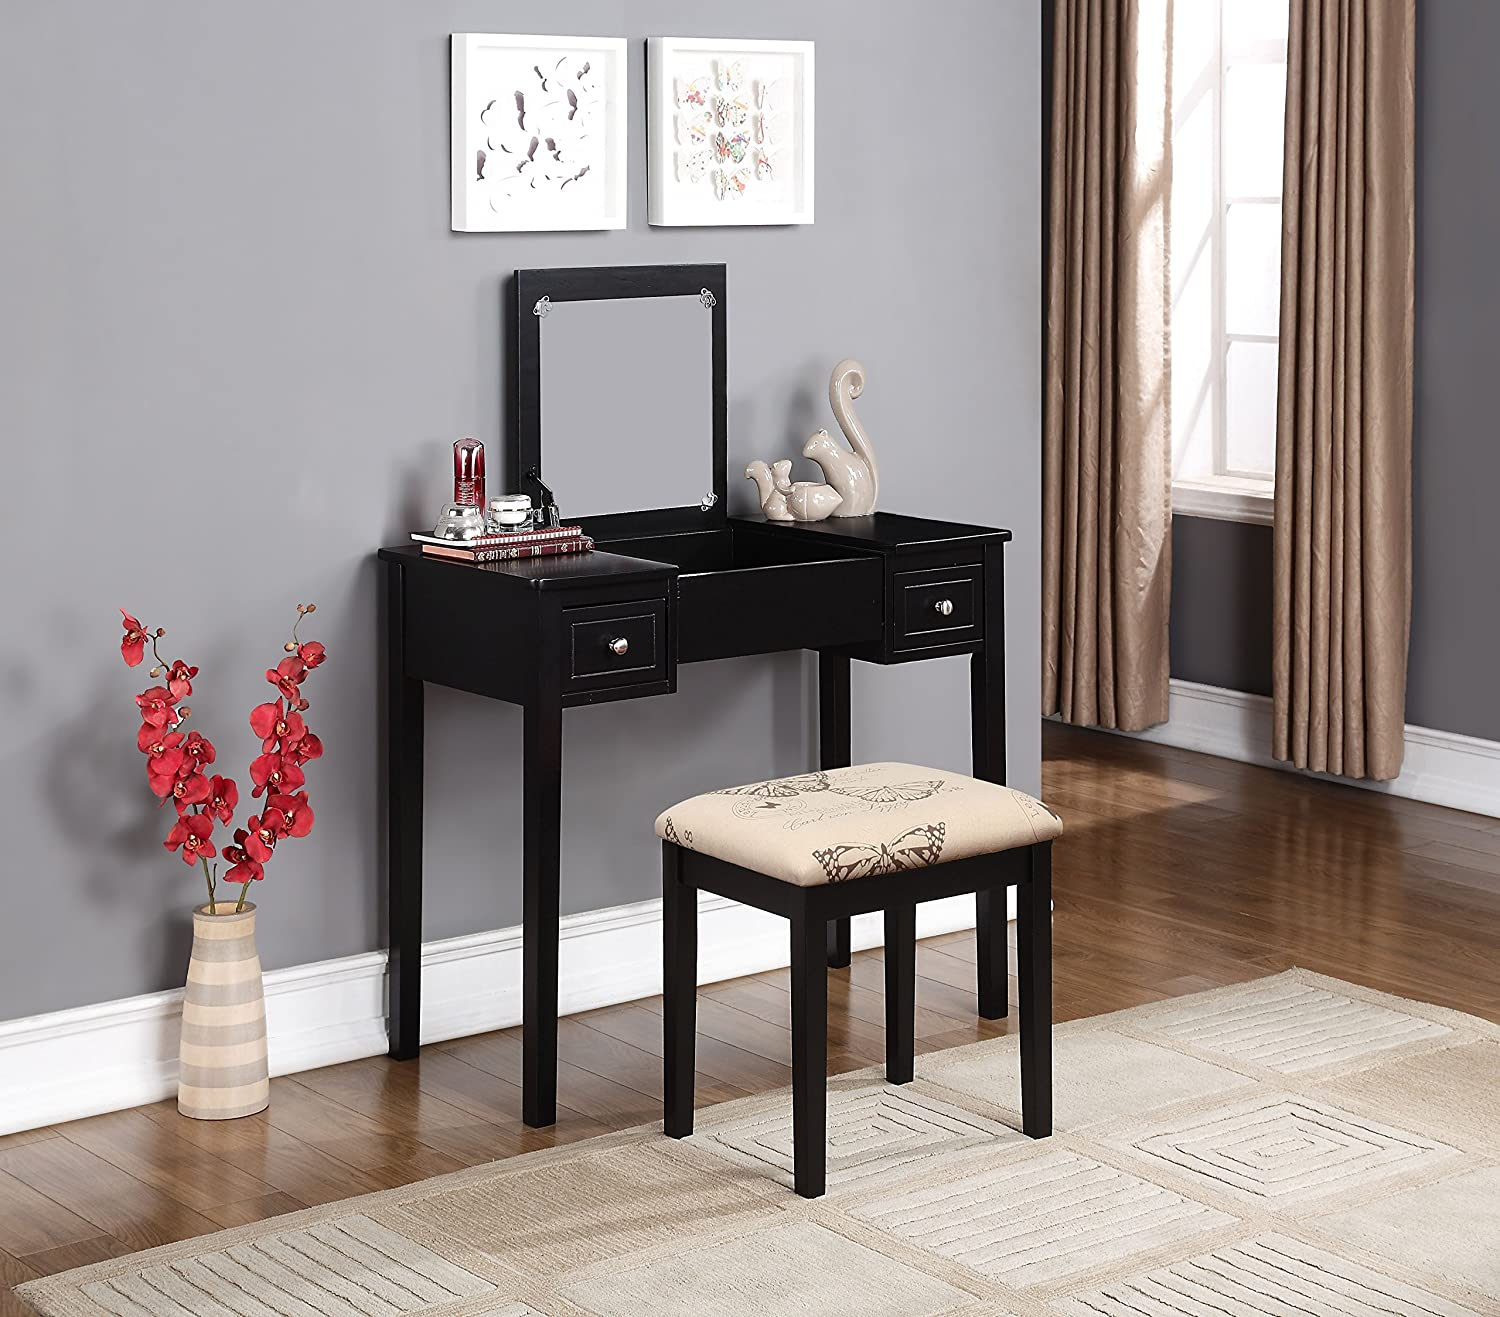 Amazon.com: Linon Home Decor Vanity Set With Butterfly Bench, Black:  Kitchen U0026 Dining